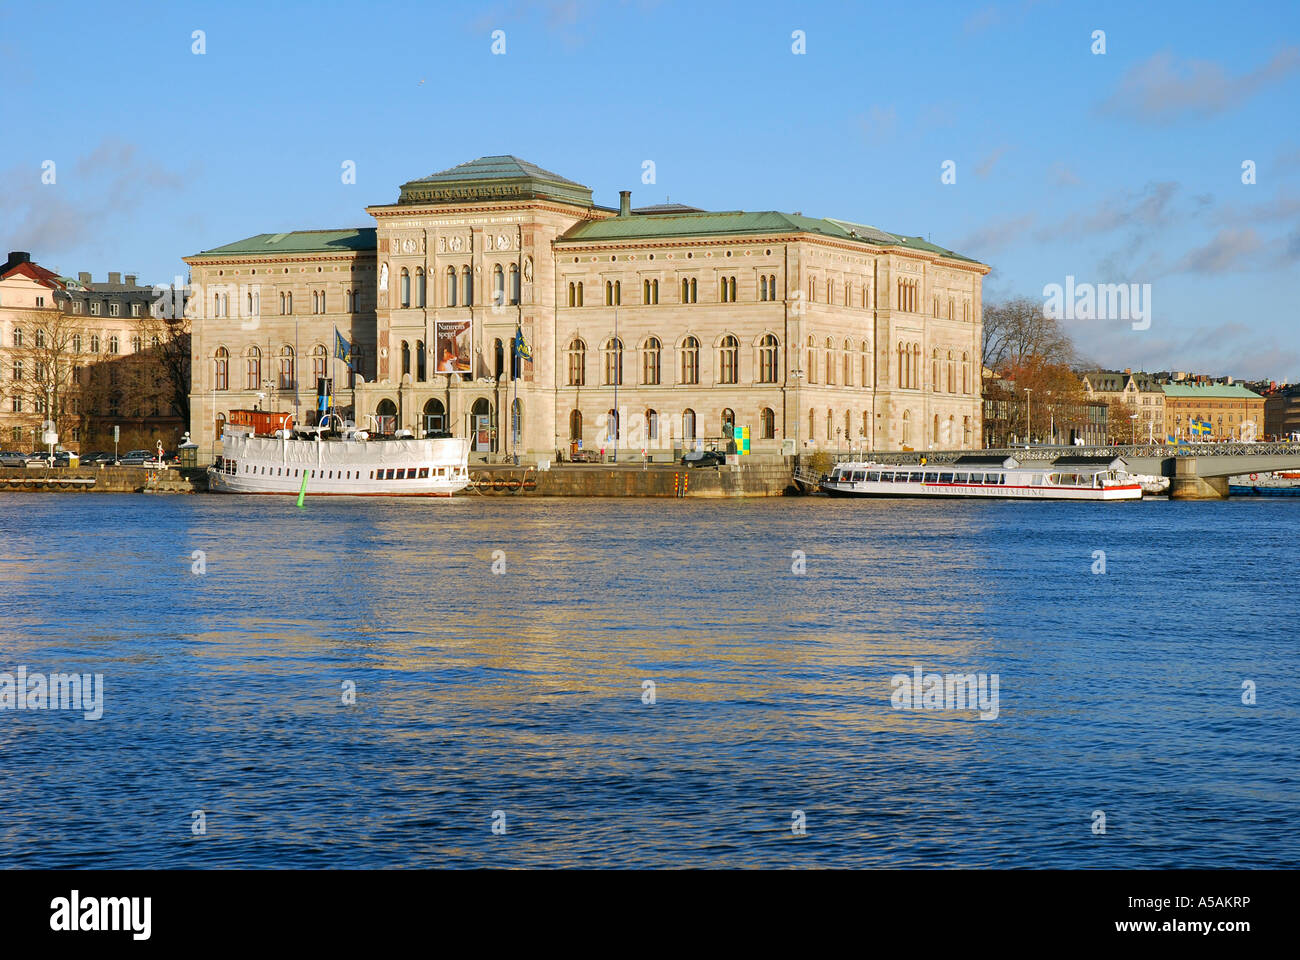 The National Museum of Fine Arts in Stockholm, Sweden, is beautifully situated by the Baltic Sea - Stock Image